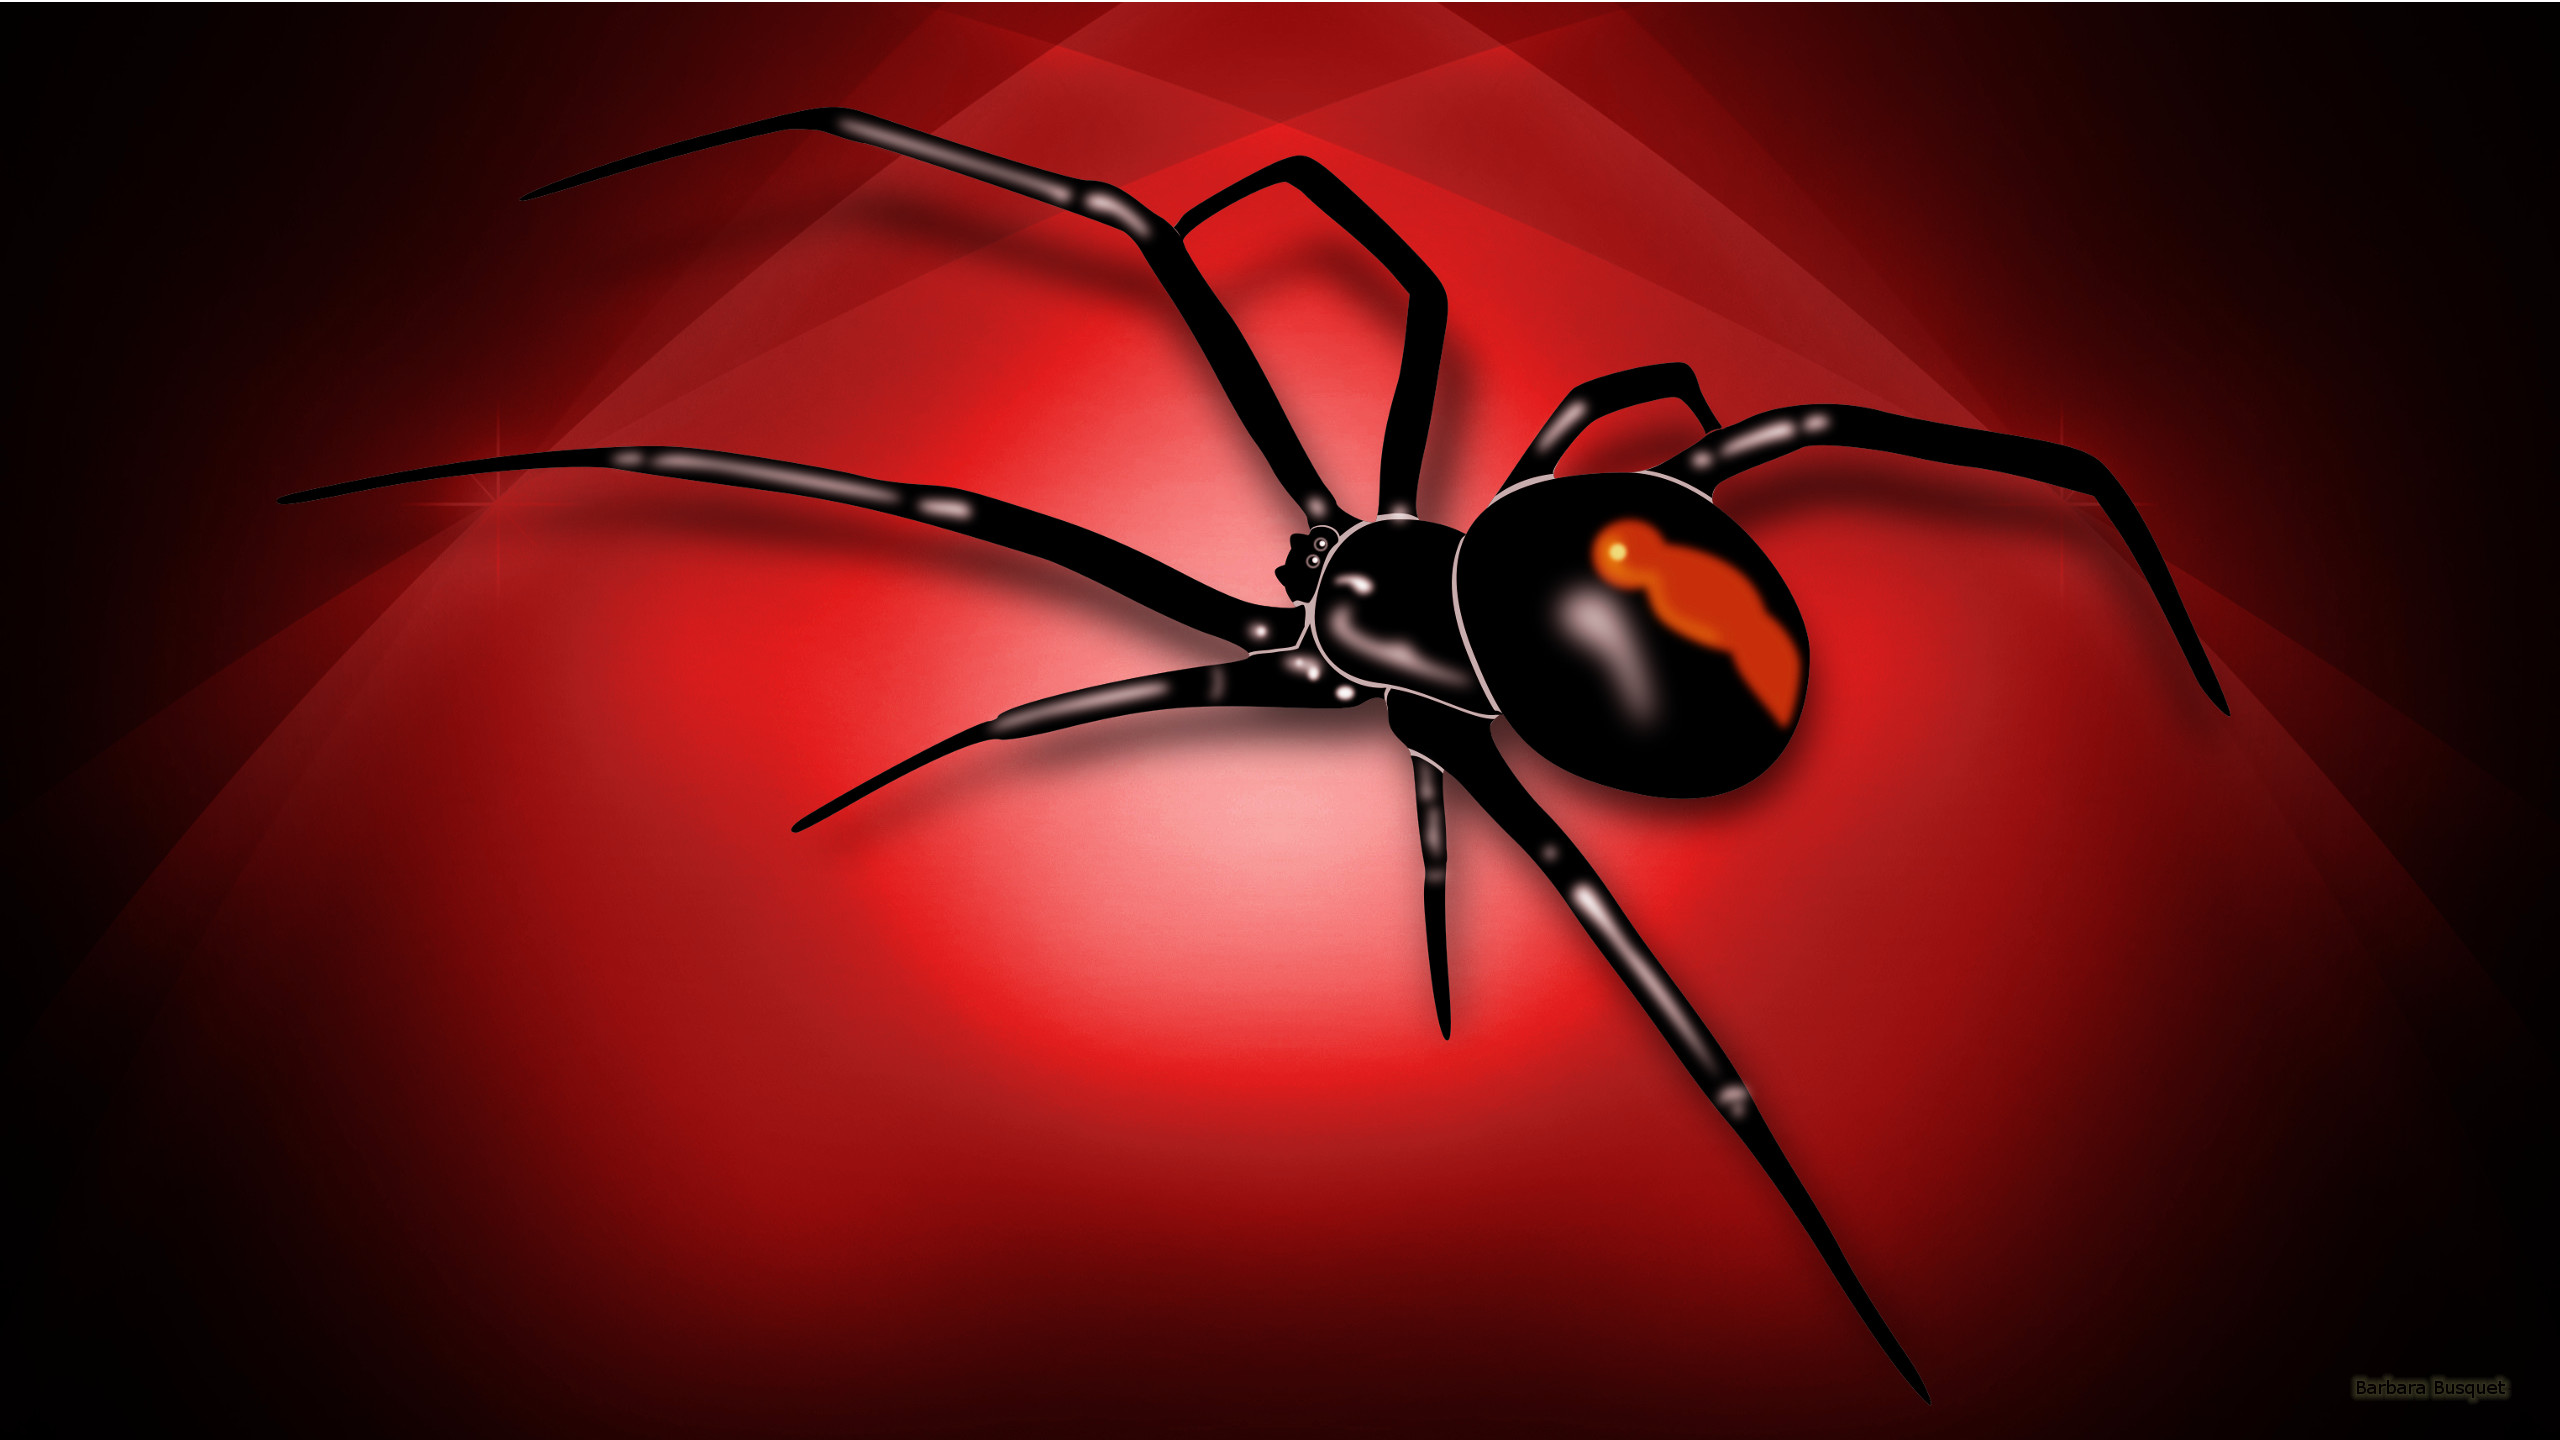 2560x1440 spider wallpaper Spiders Nature Wallpaper Collection 2560×1440 Spider  Wallpaper (42 Wallpapers) |